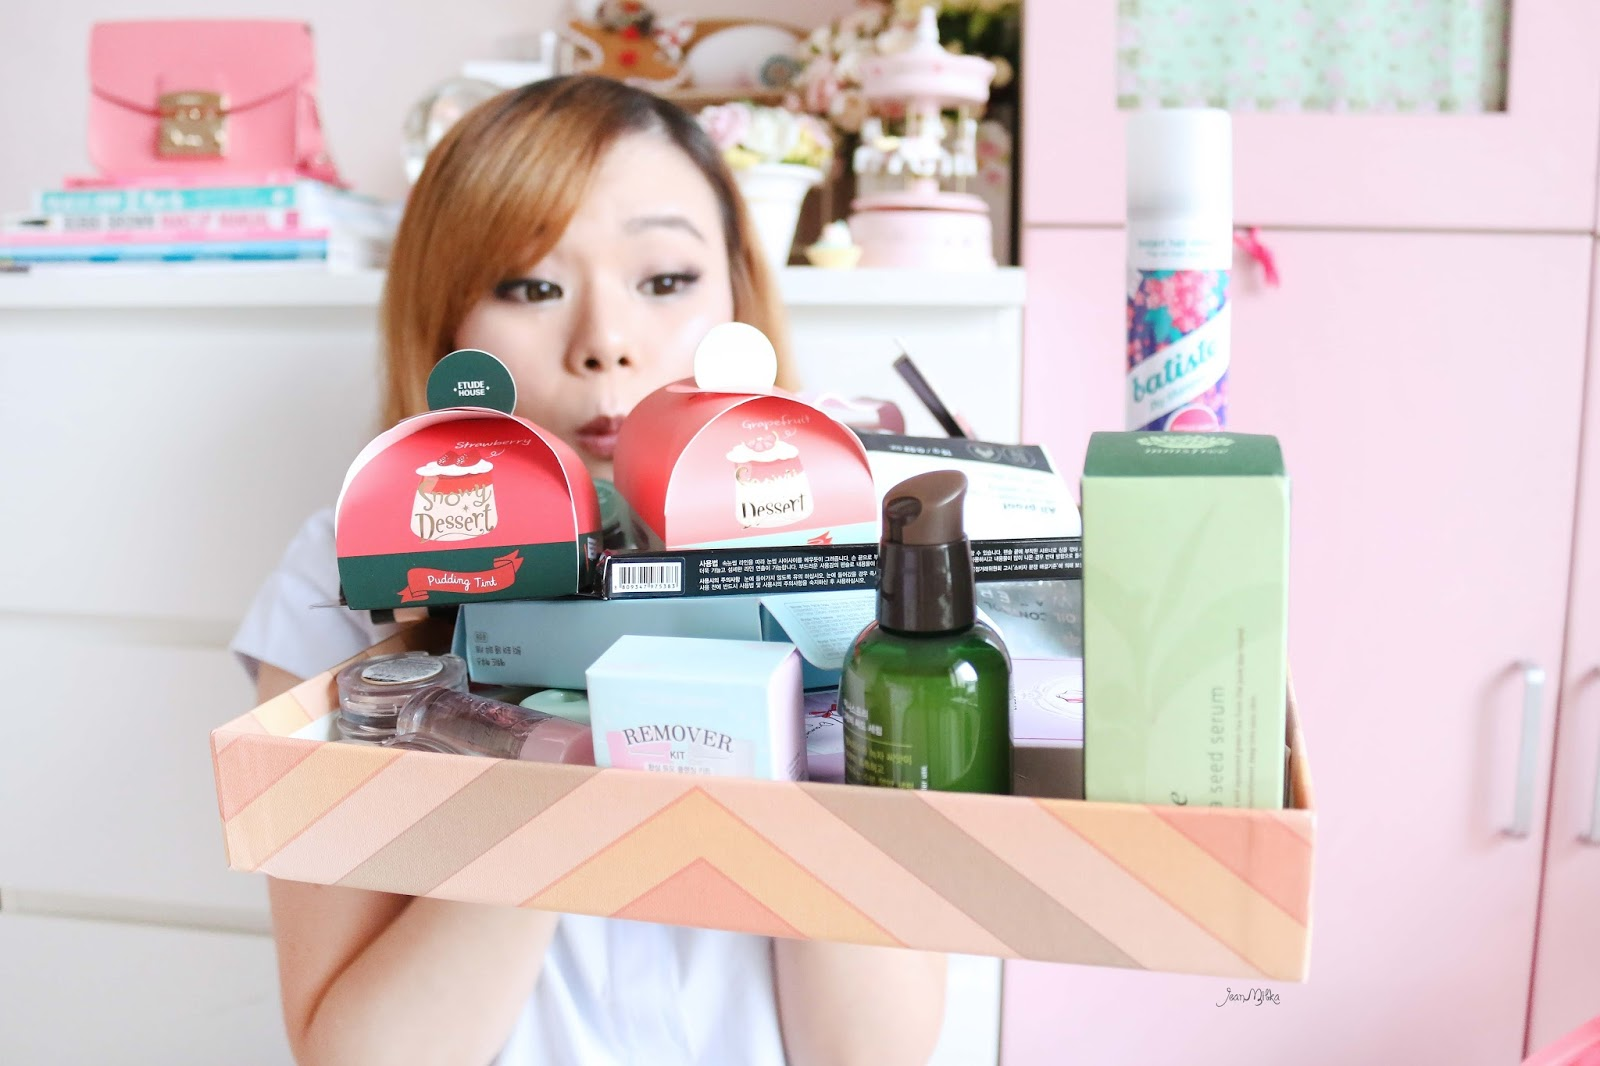 haul, huge haul, huge drugstore haul, drugstore haul, singapore haul, haul singapore, makeup, skin care, beauty haul, makeup haul, sasa singapore, watson, innisfree, etude house, clio, maybelline, batiste, nyx, biore, the face shop